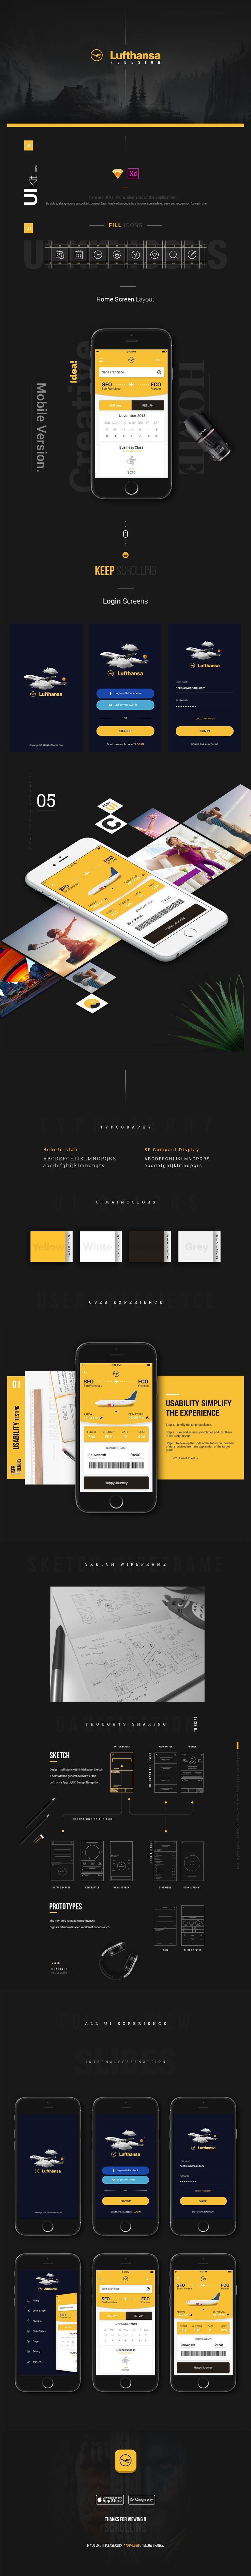 Here comes the improvised redesigned version of air ticket booking app for the world class airlines - Lufthansa. I have sprinkled some of my thoughts and creativity to enhance the interface and user experience for the target audience. Your feedback is wel…. The UX Blog podcast is also available on iTunes.